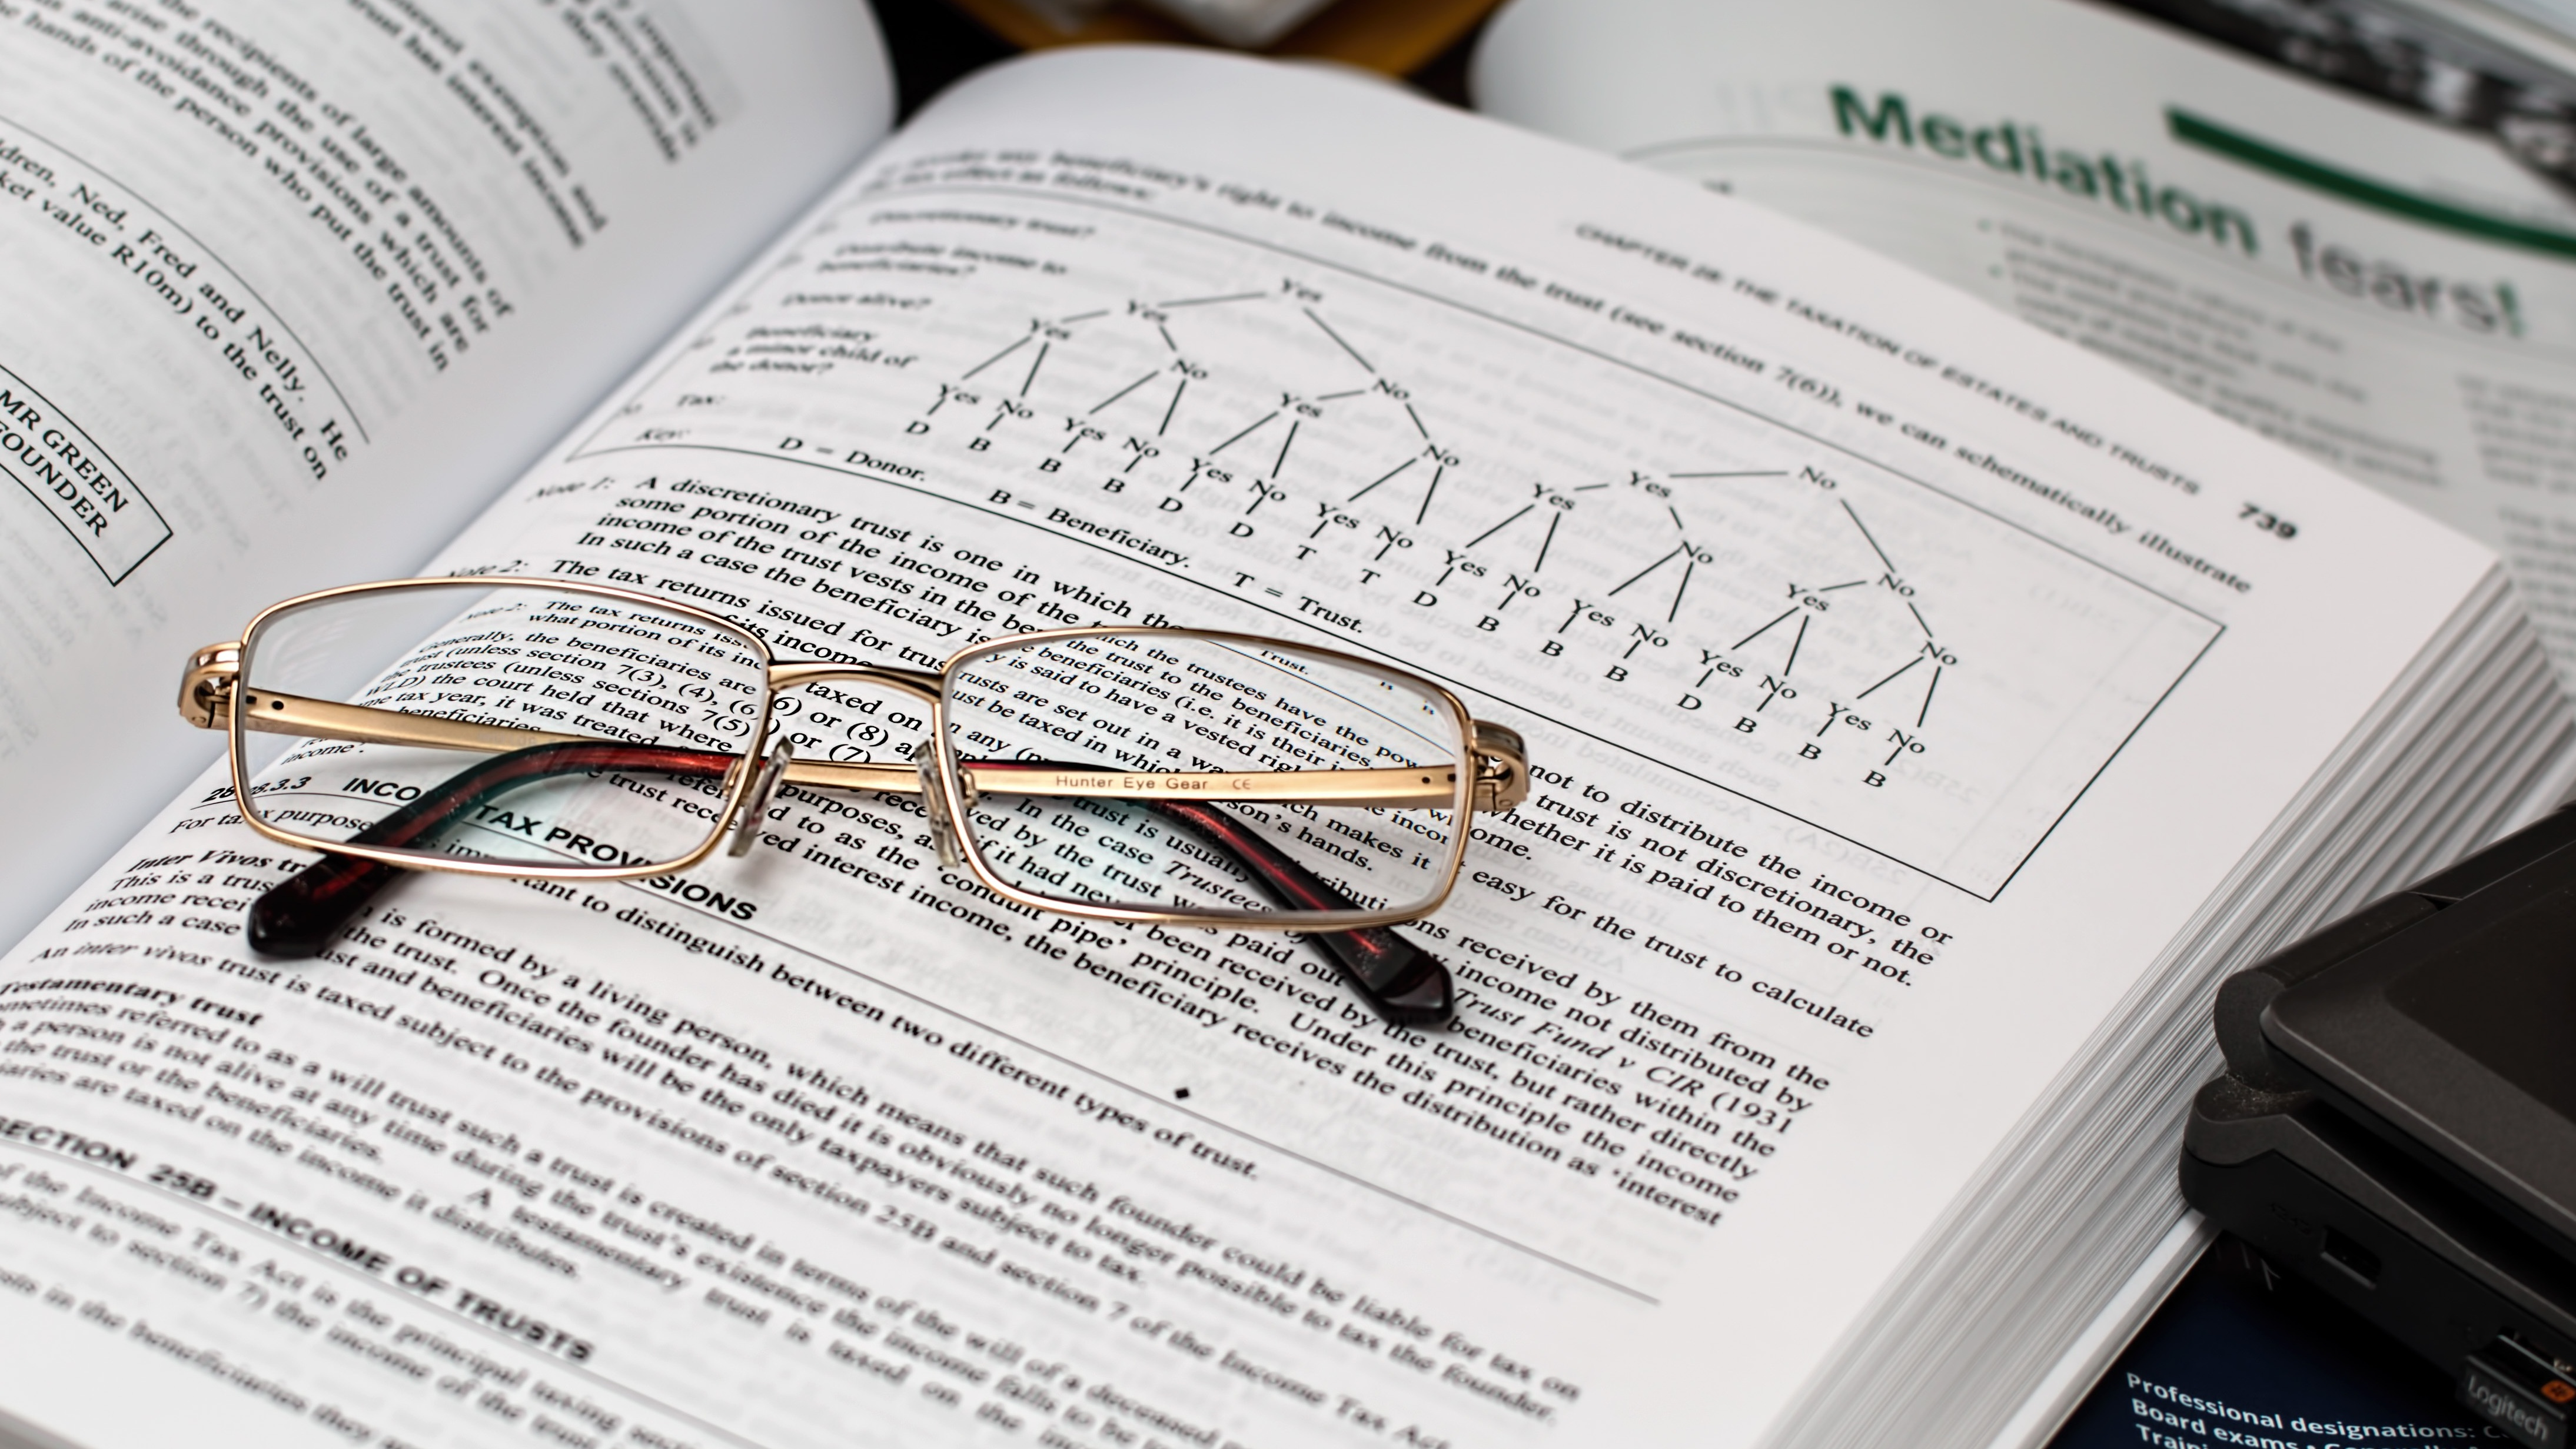 A pair of glasses on an open text book